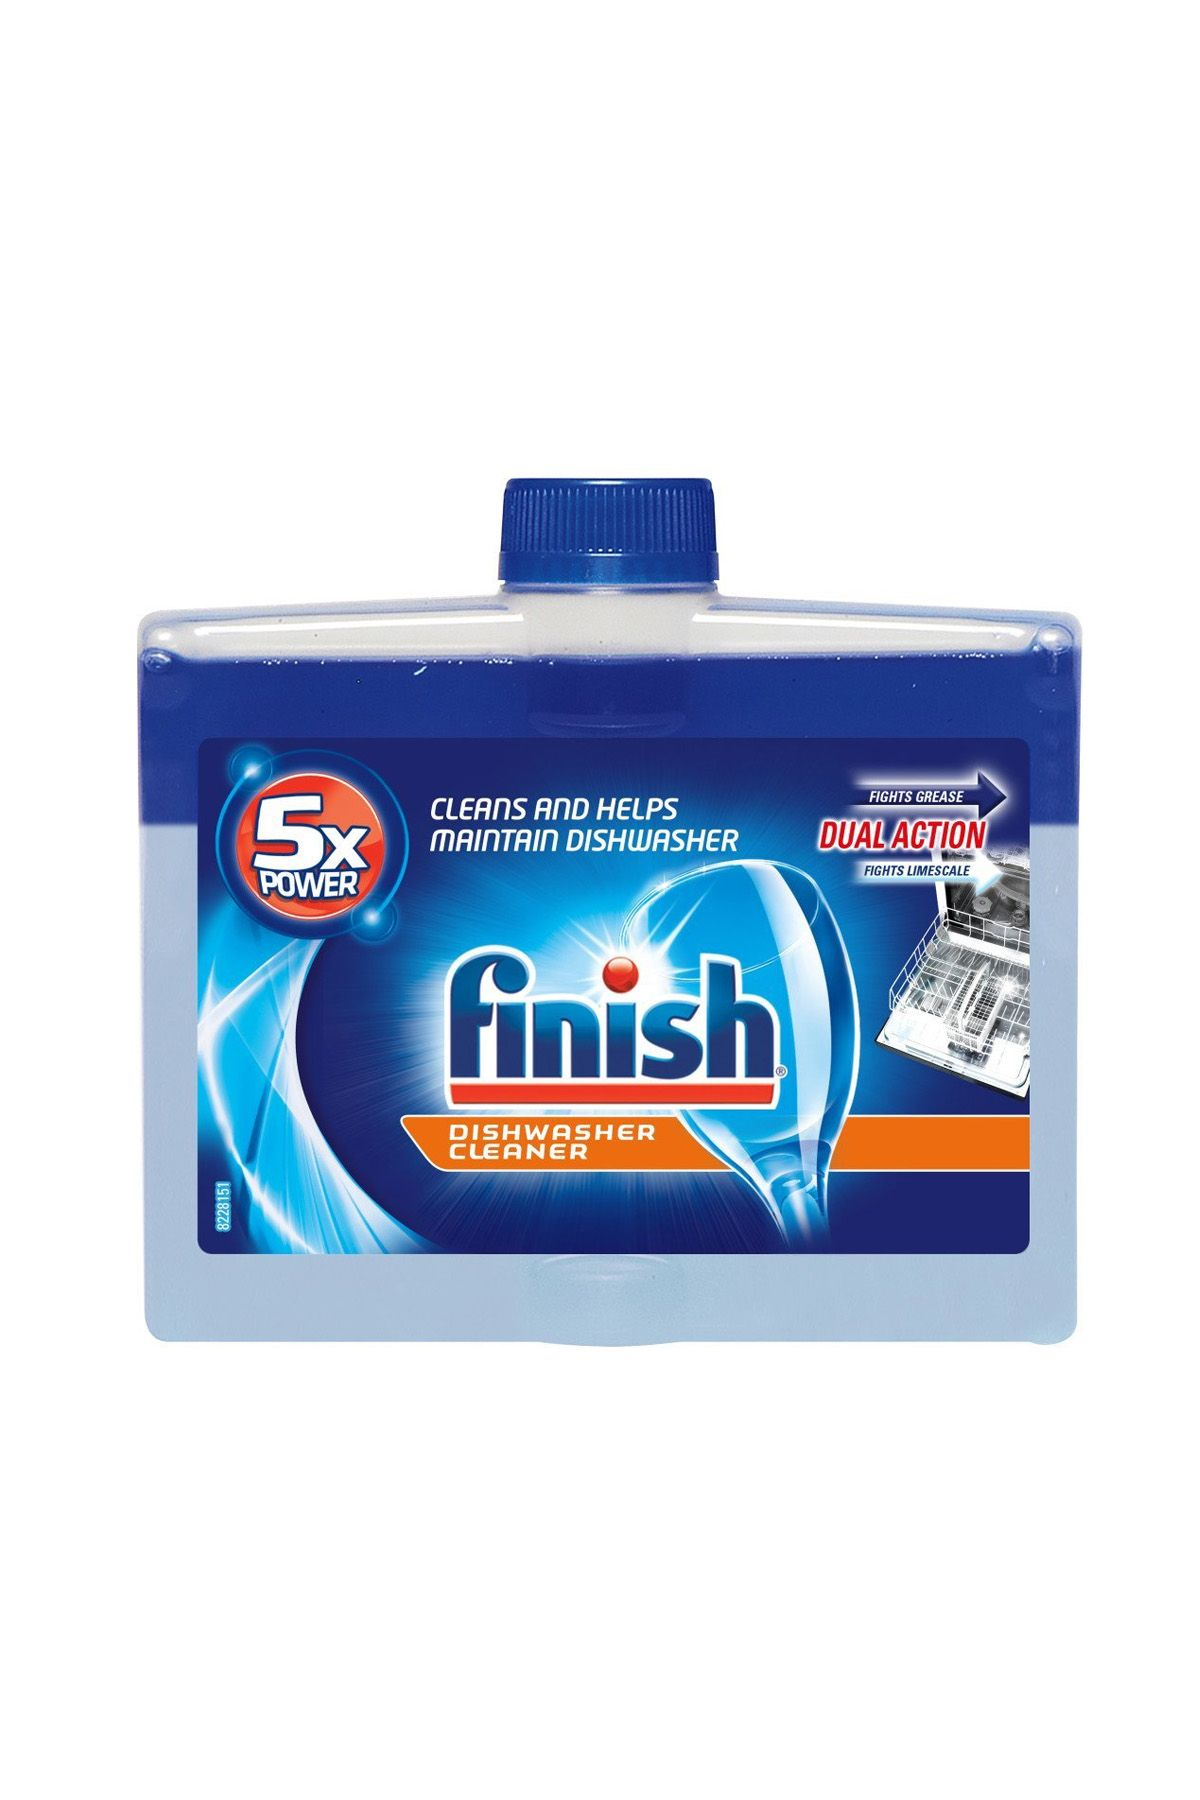 465f6d641342 Best Dishwasher Cleaner - Top-Rated Dishwasher Cleaning Products